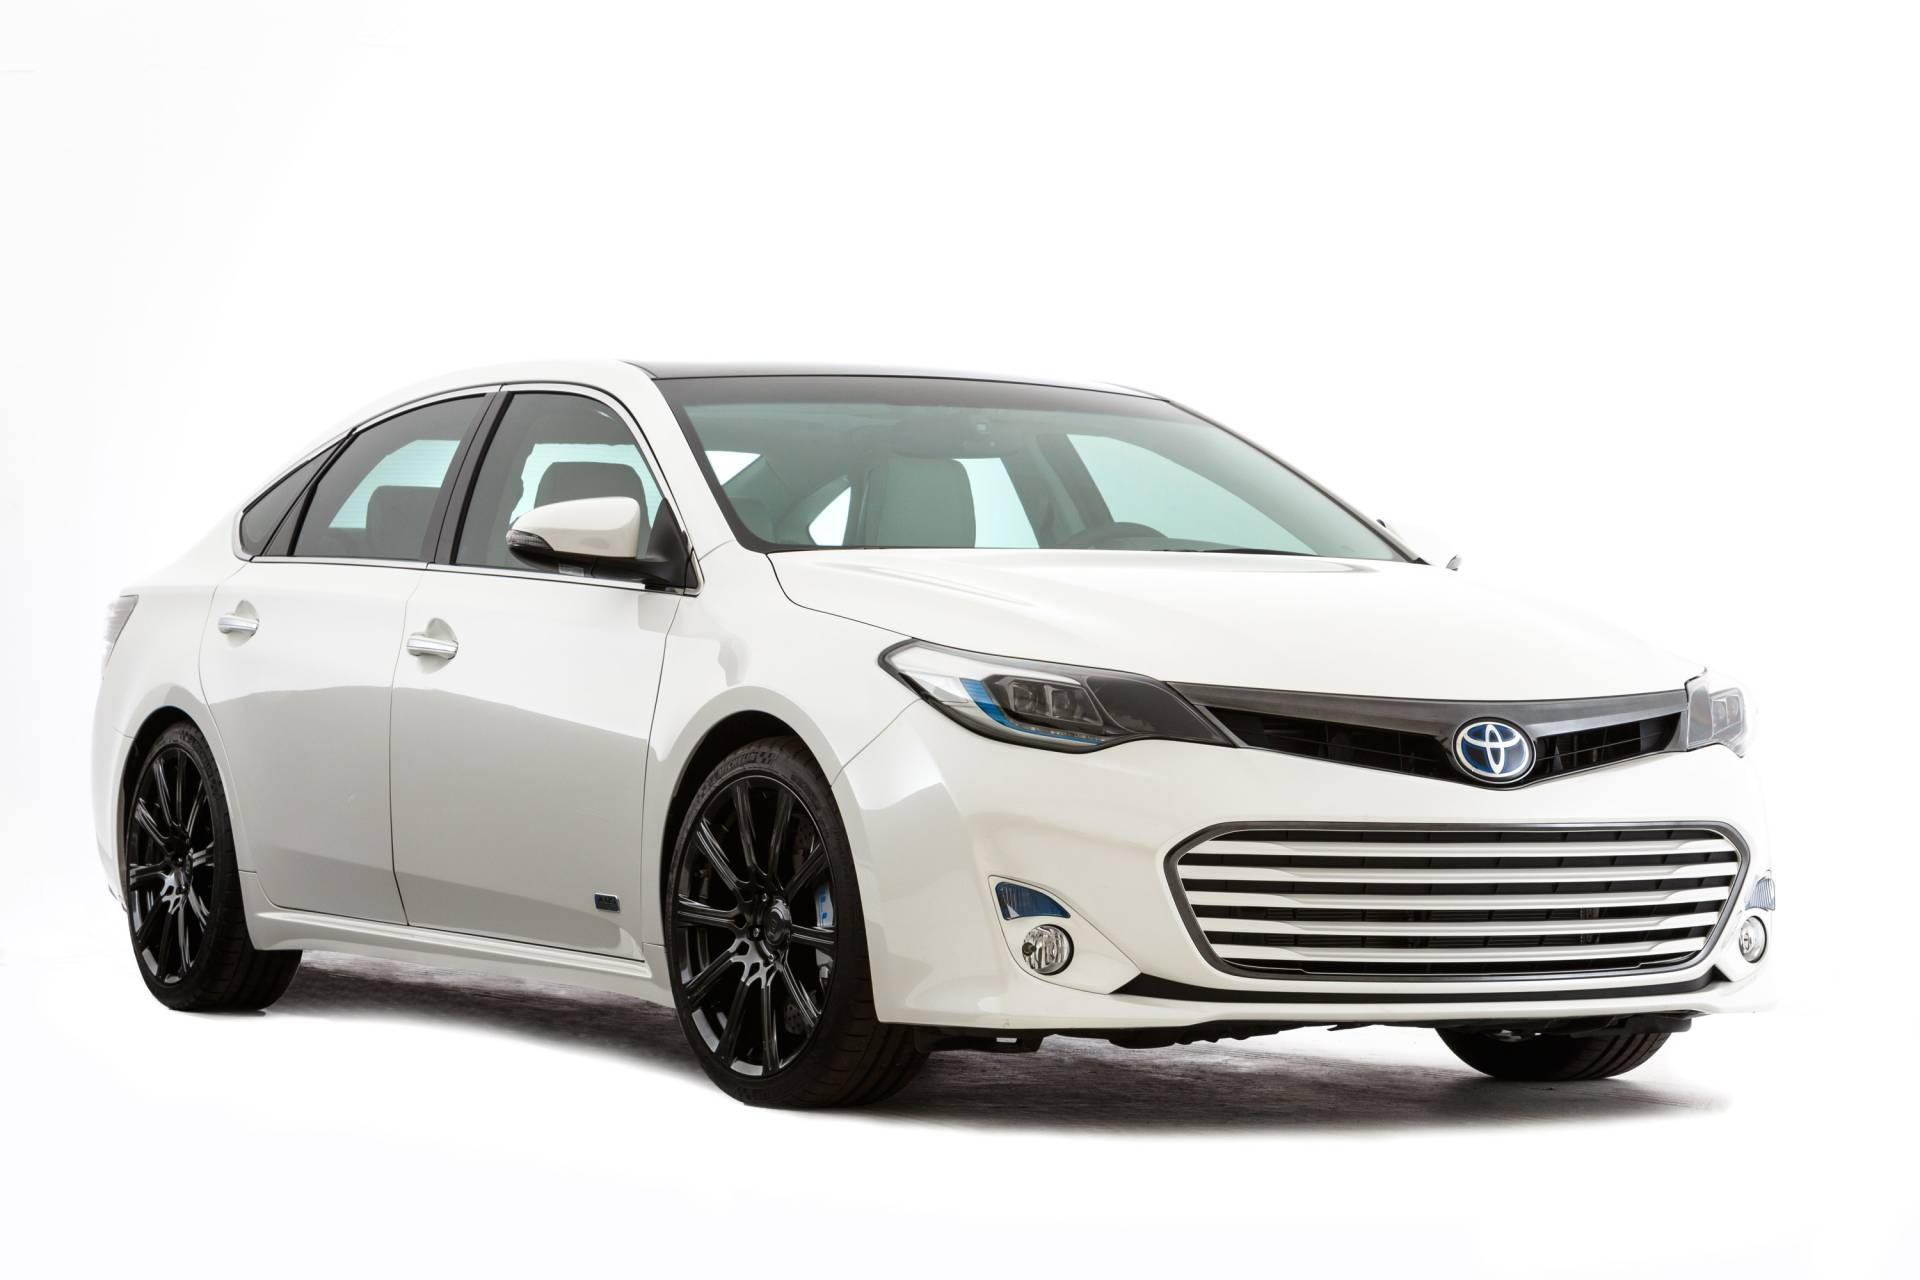 2013 toyota avalon trd edition pictures news research pricing. Black Bedroom Furniture Sets. Home Design Ideas